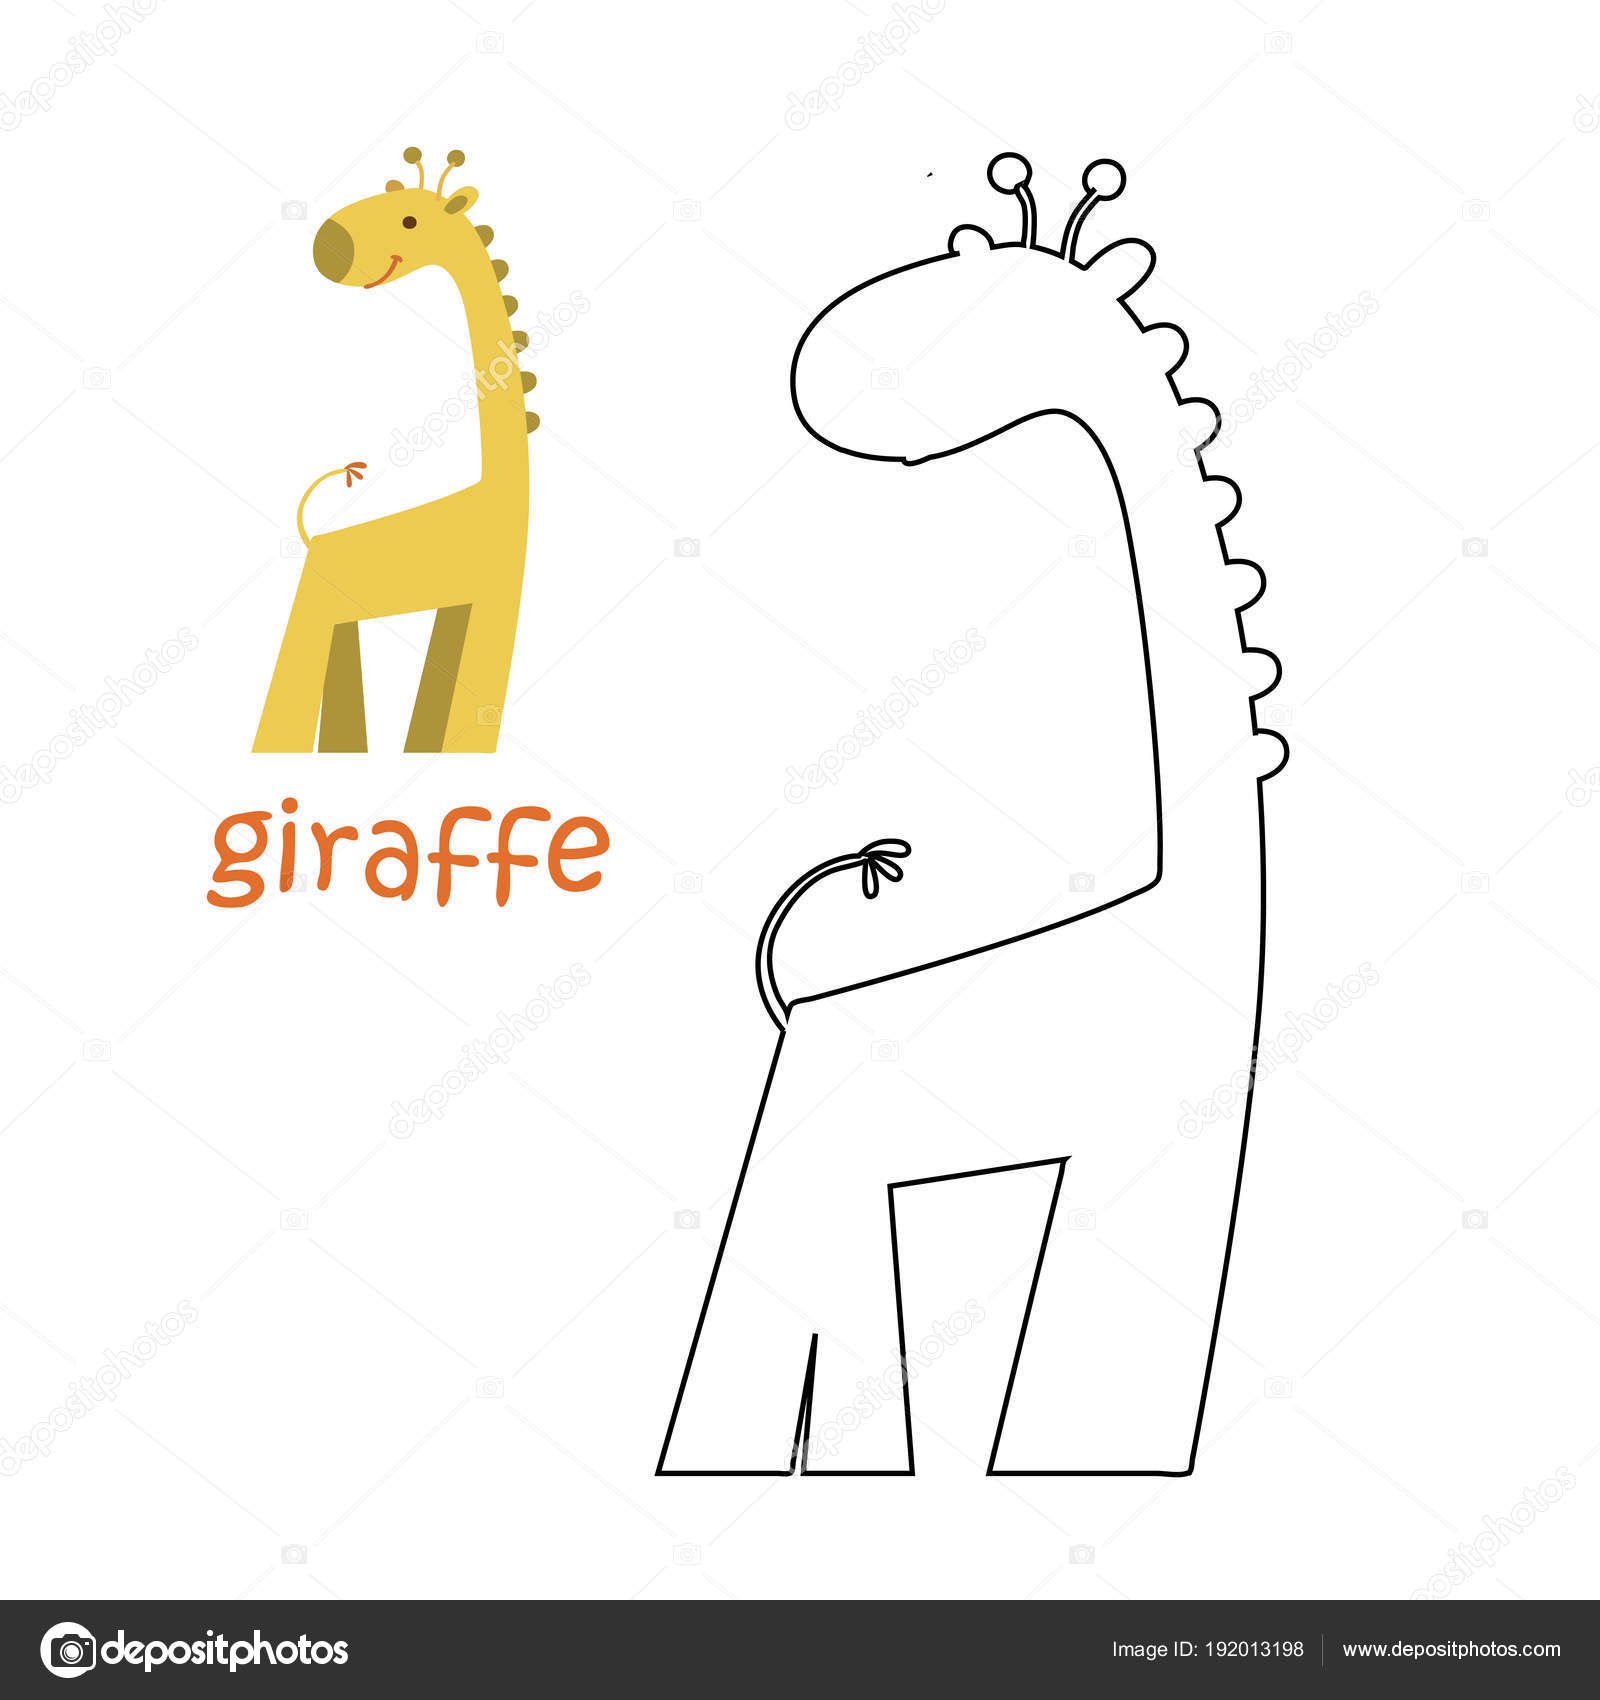 Kids coloring page - giraffe — Stock Vector © ollegN #192013198